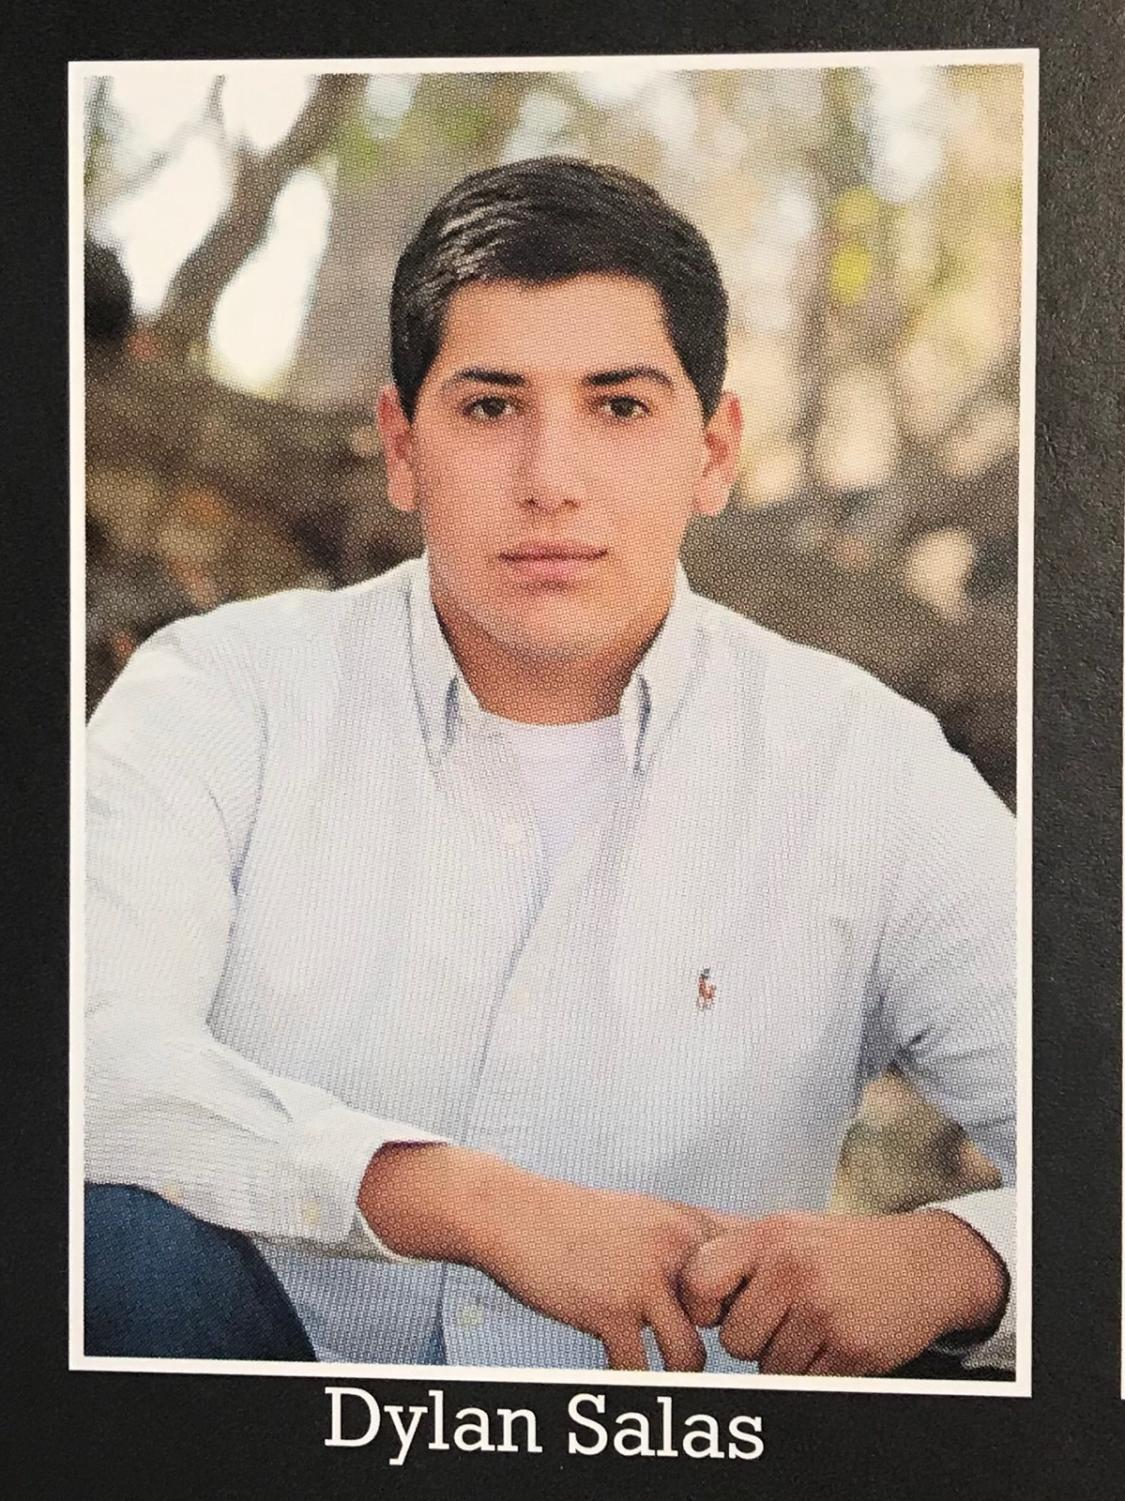 Dylan Salas' Rocky Mountain High School yearbook photo.